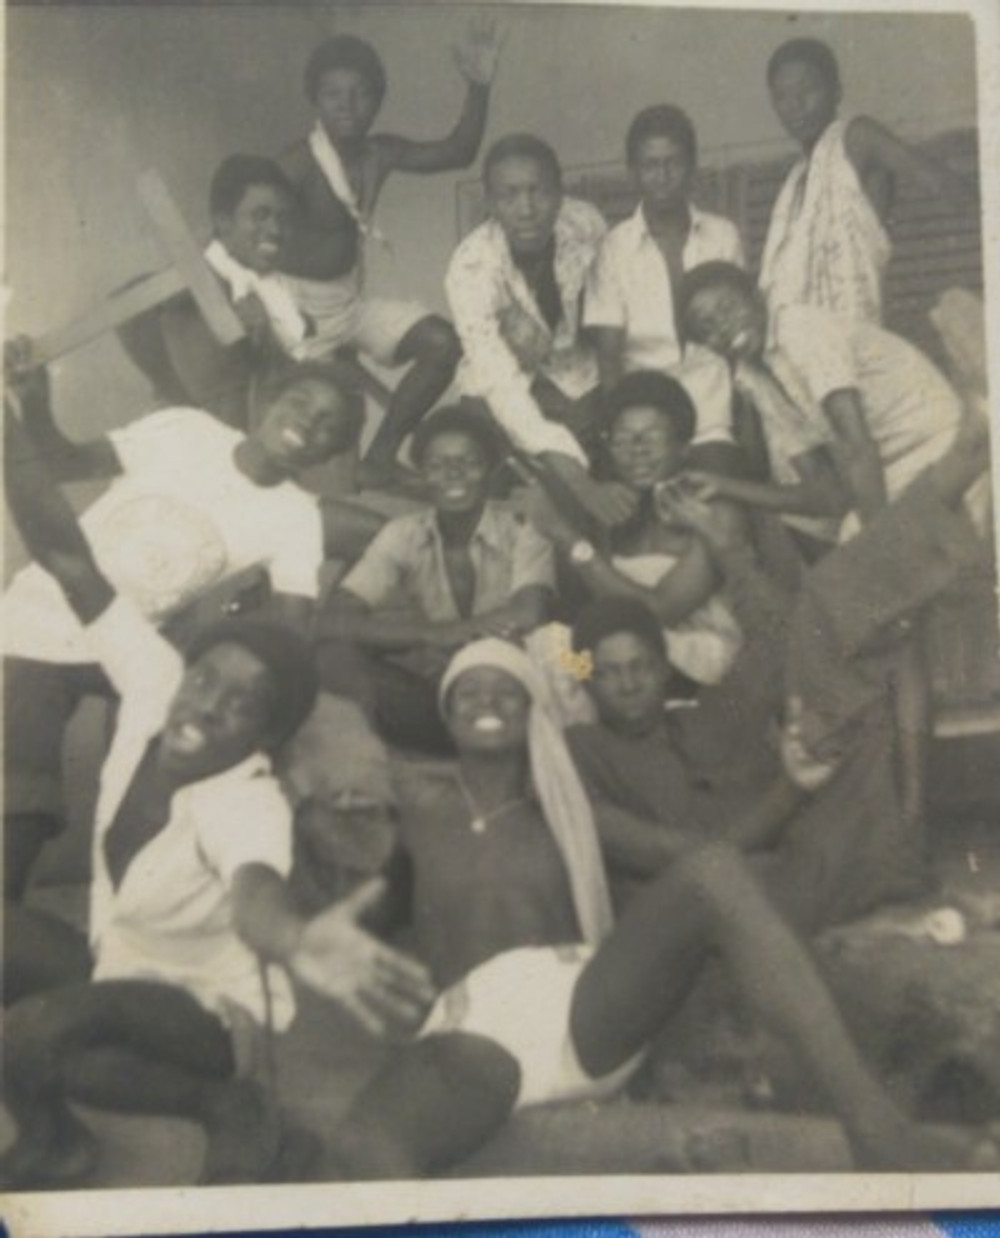 With some of my classmates, c. 1975.